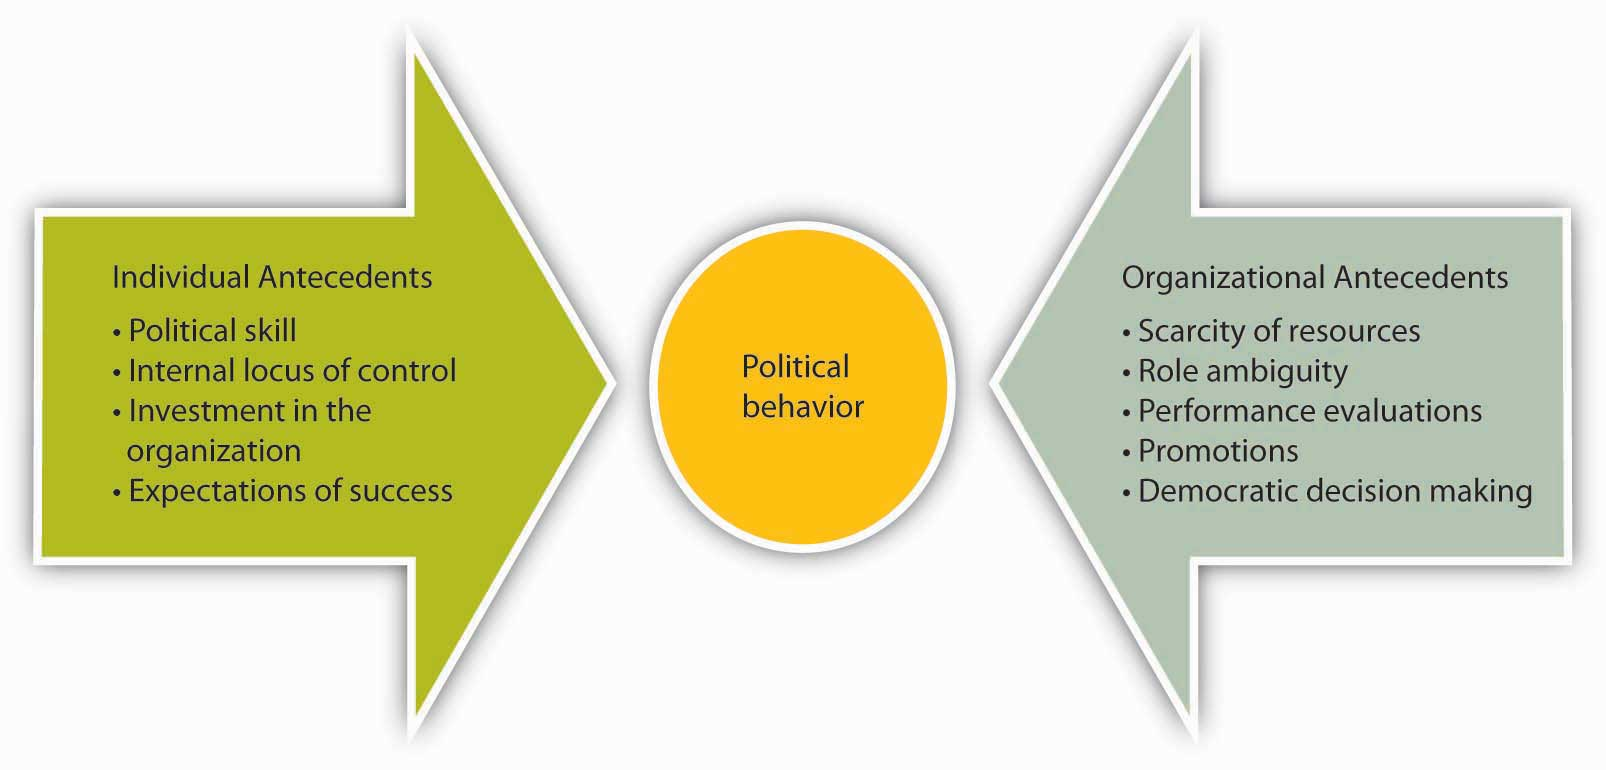 Individual and organizational antecedents can both lead to political behavior